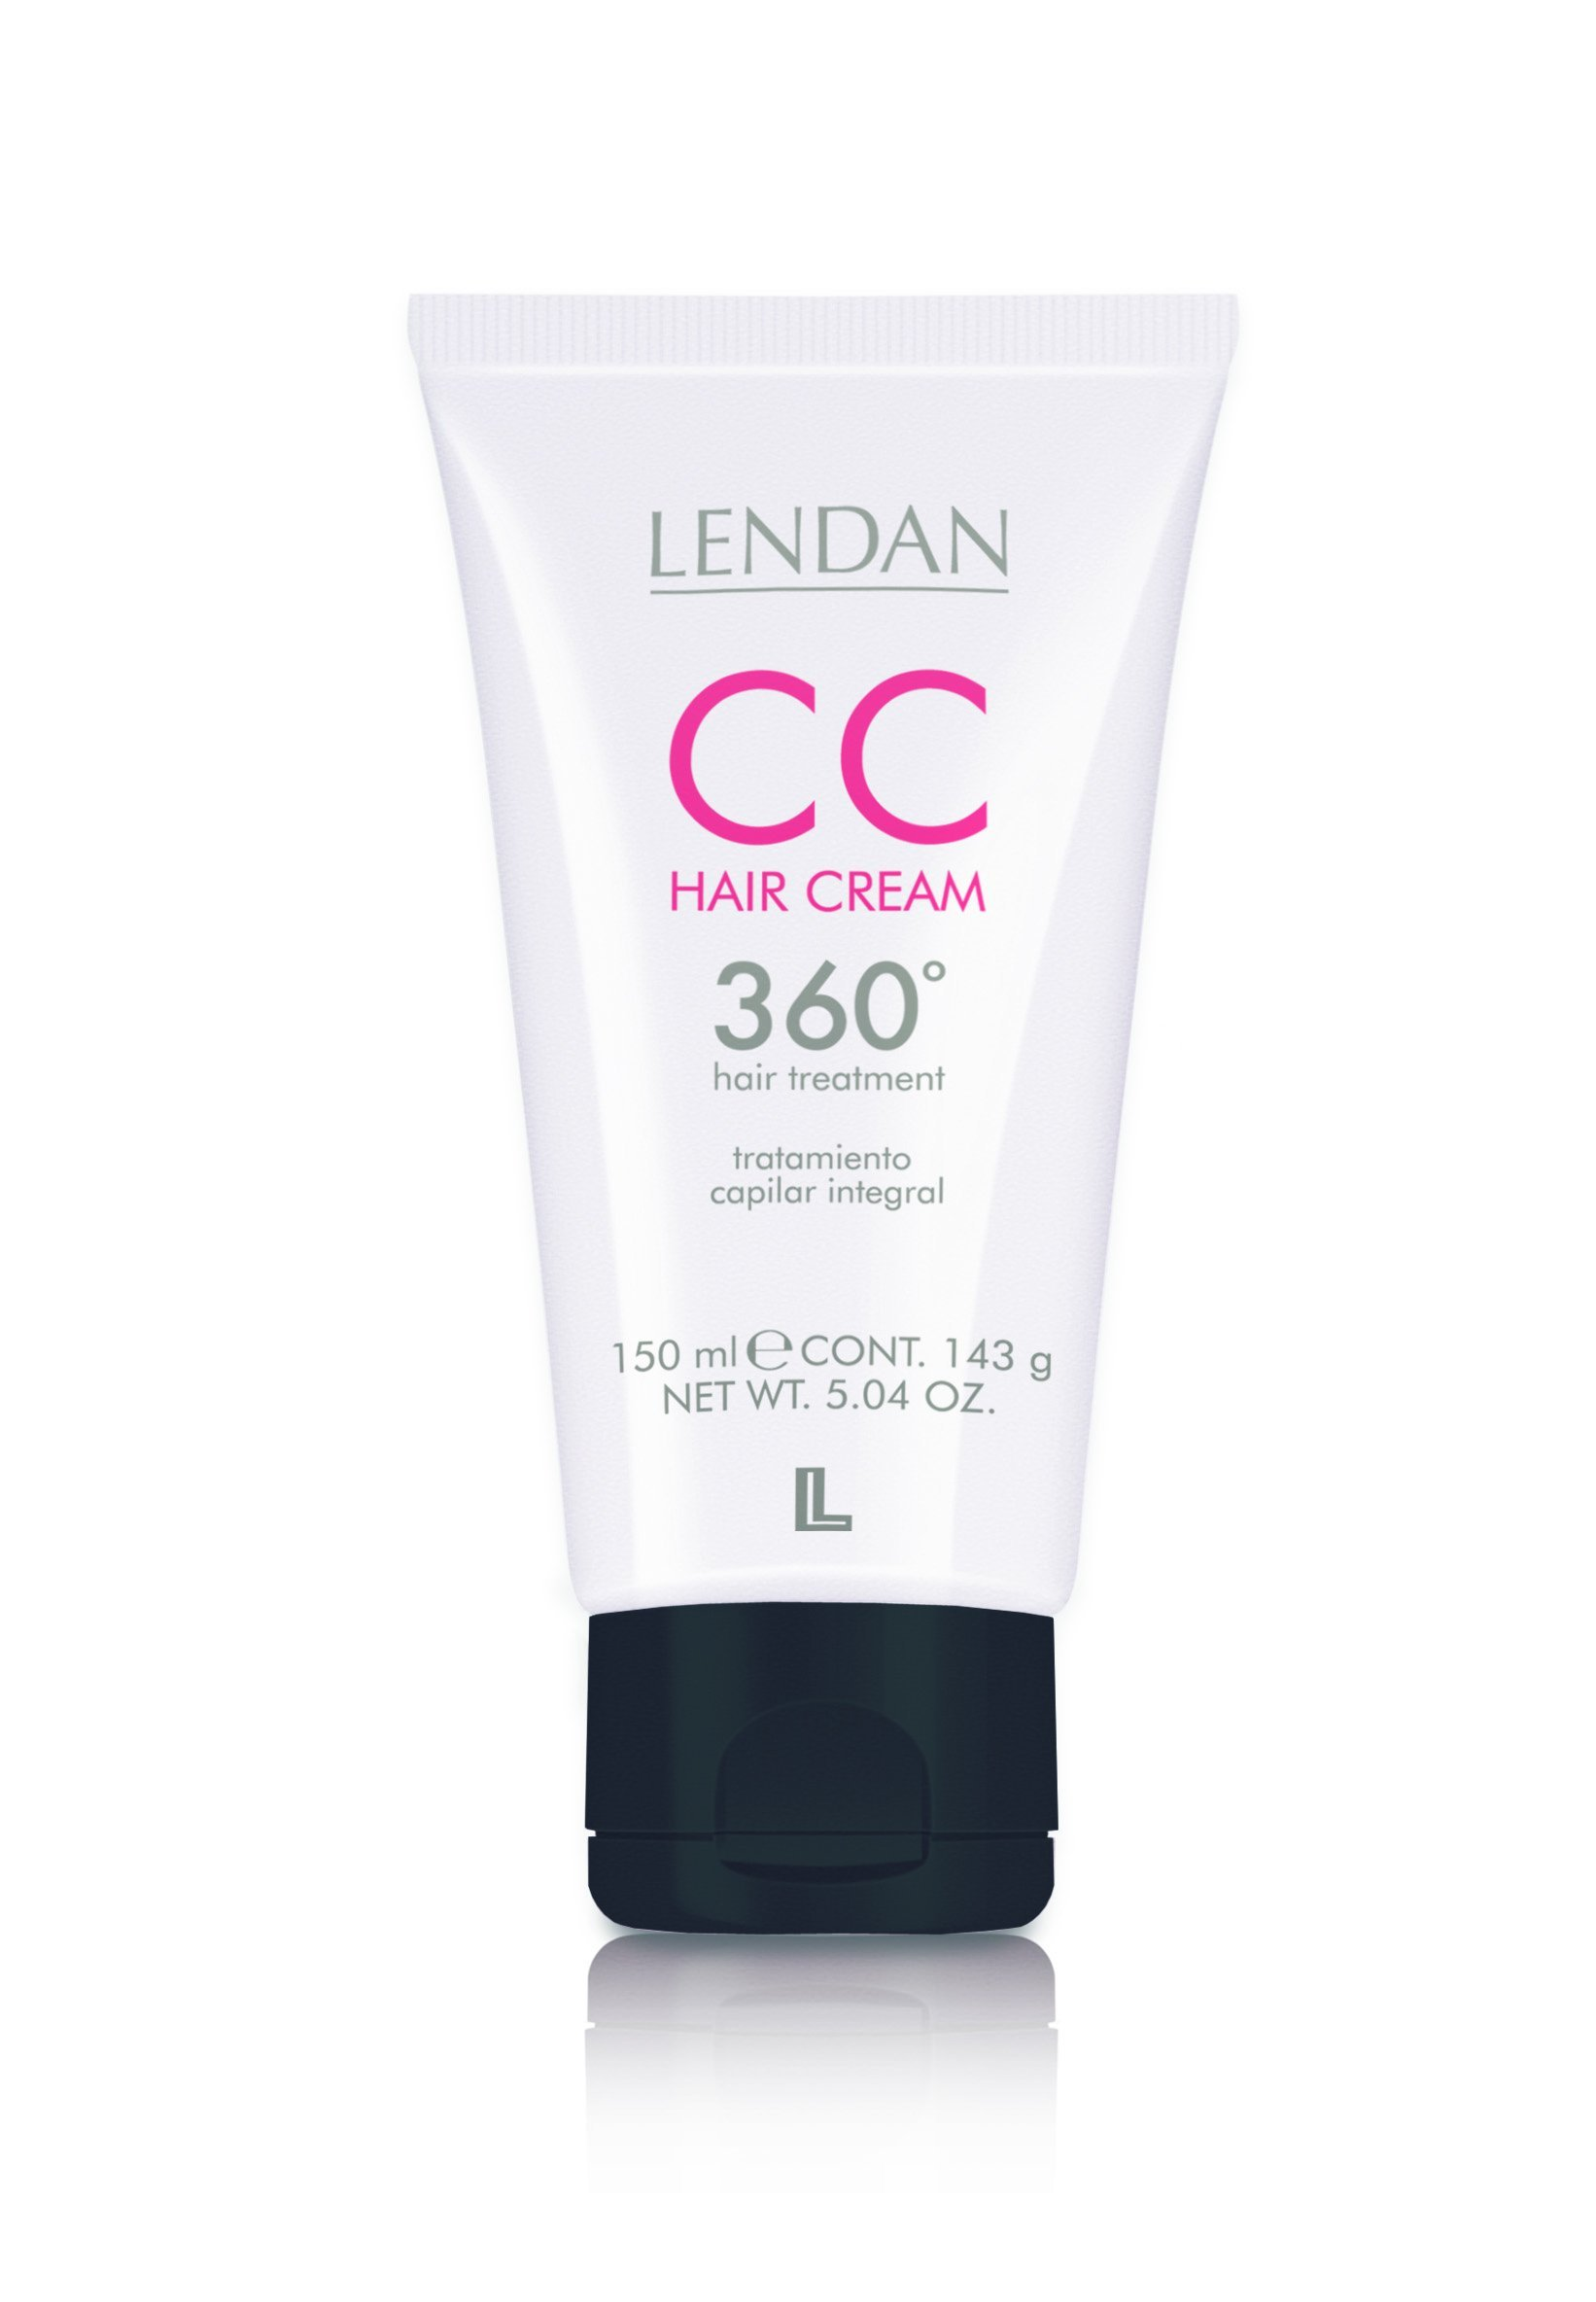 Lendan LD CC Hair Cream Mascarilla Capilar - 150 ml product image